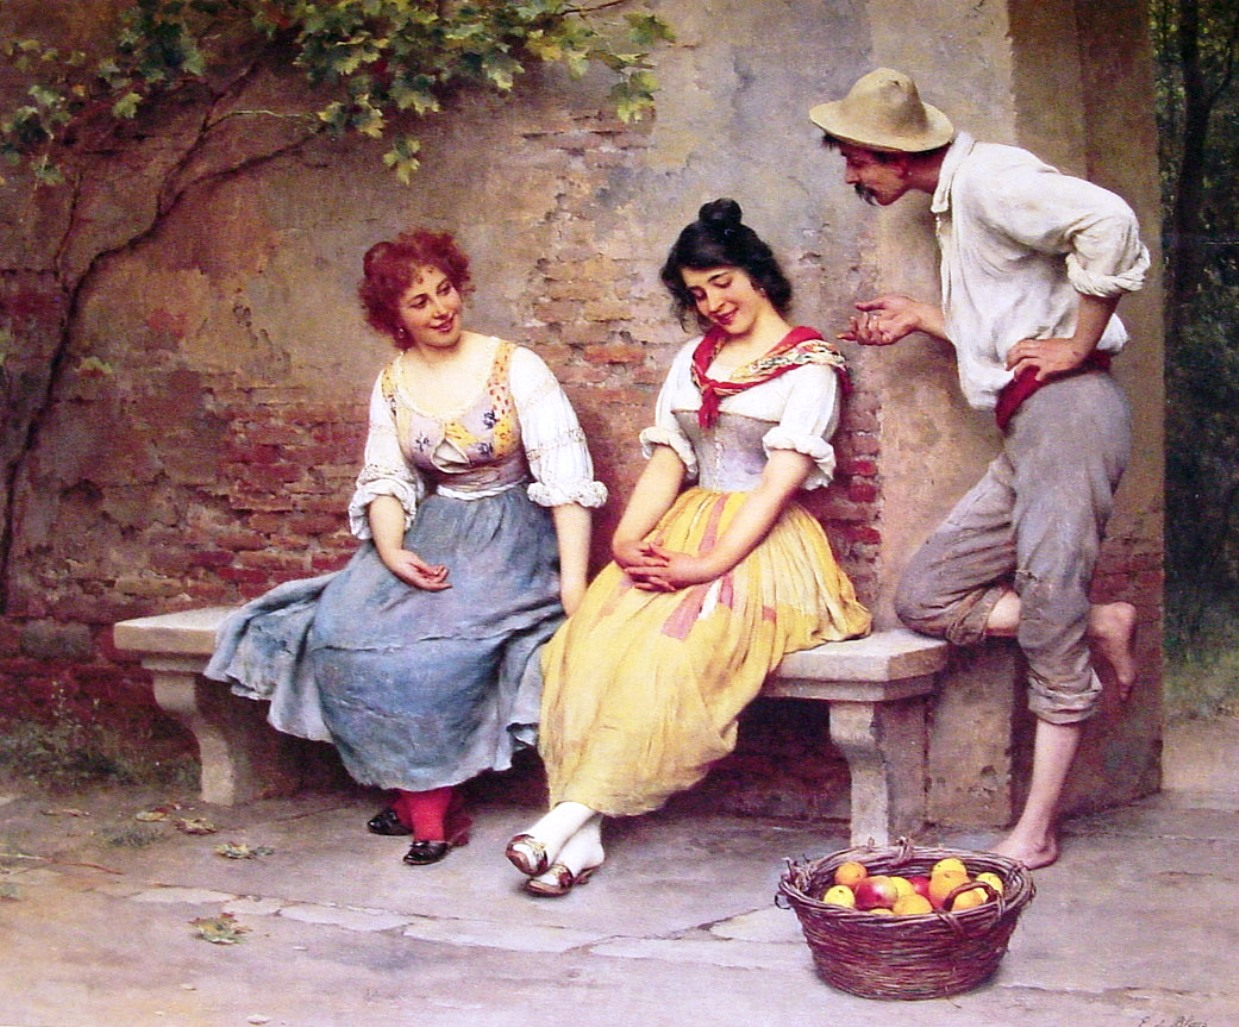 The Flirtation by Eugen de Blaas